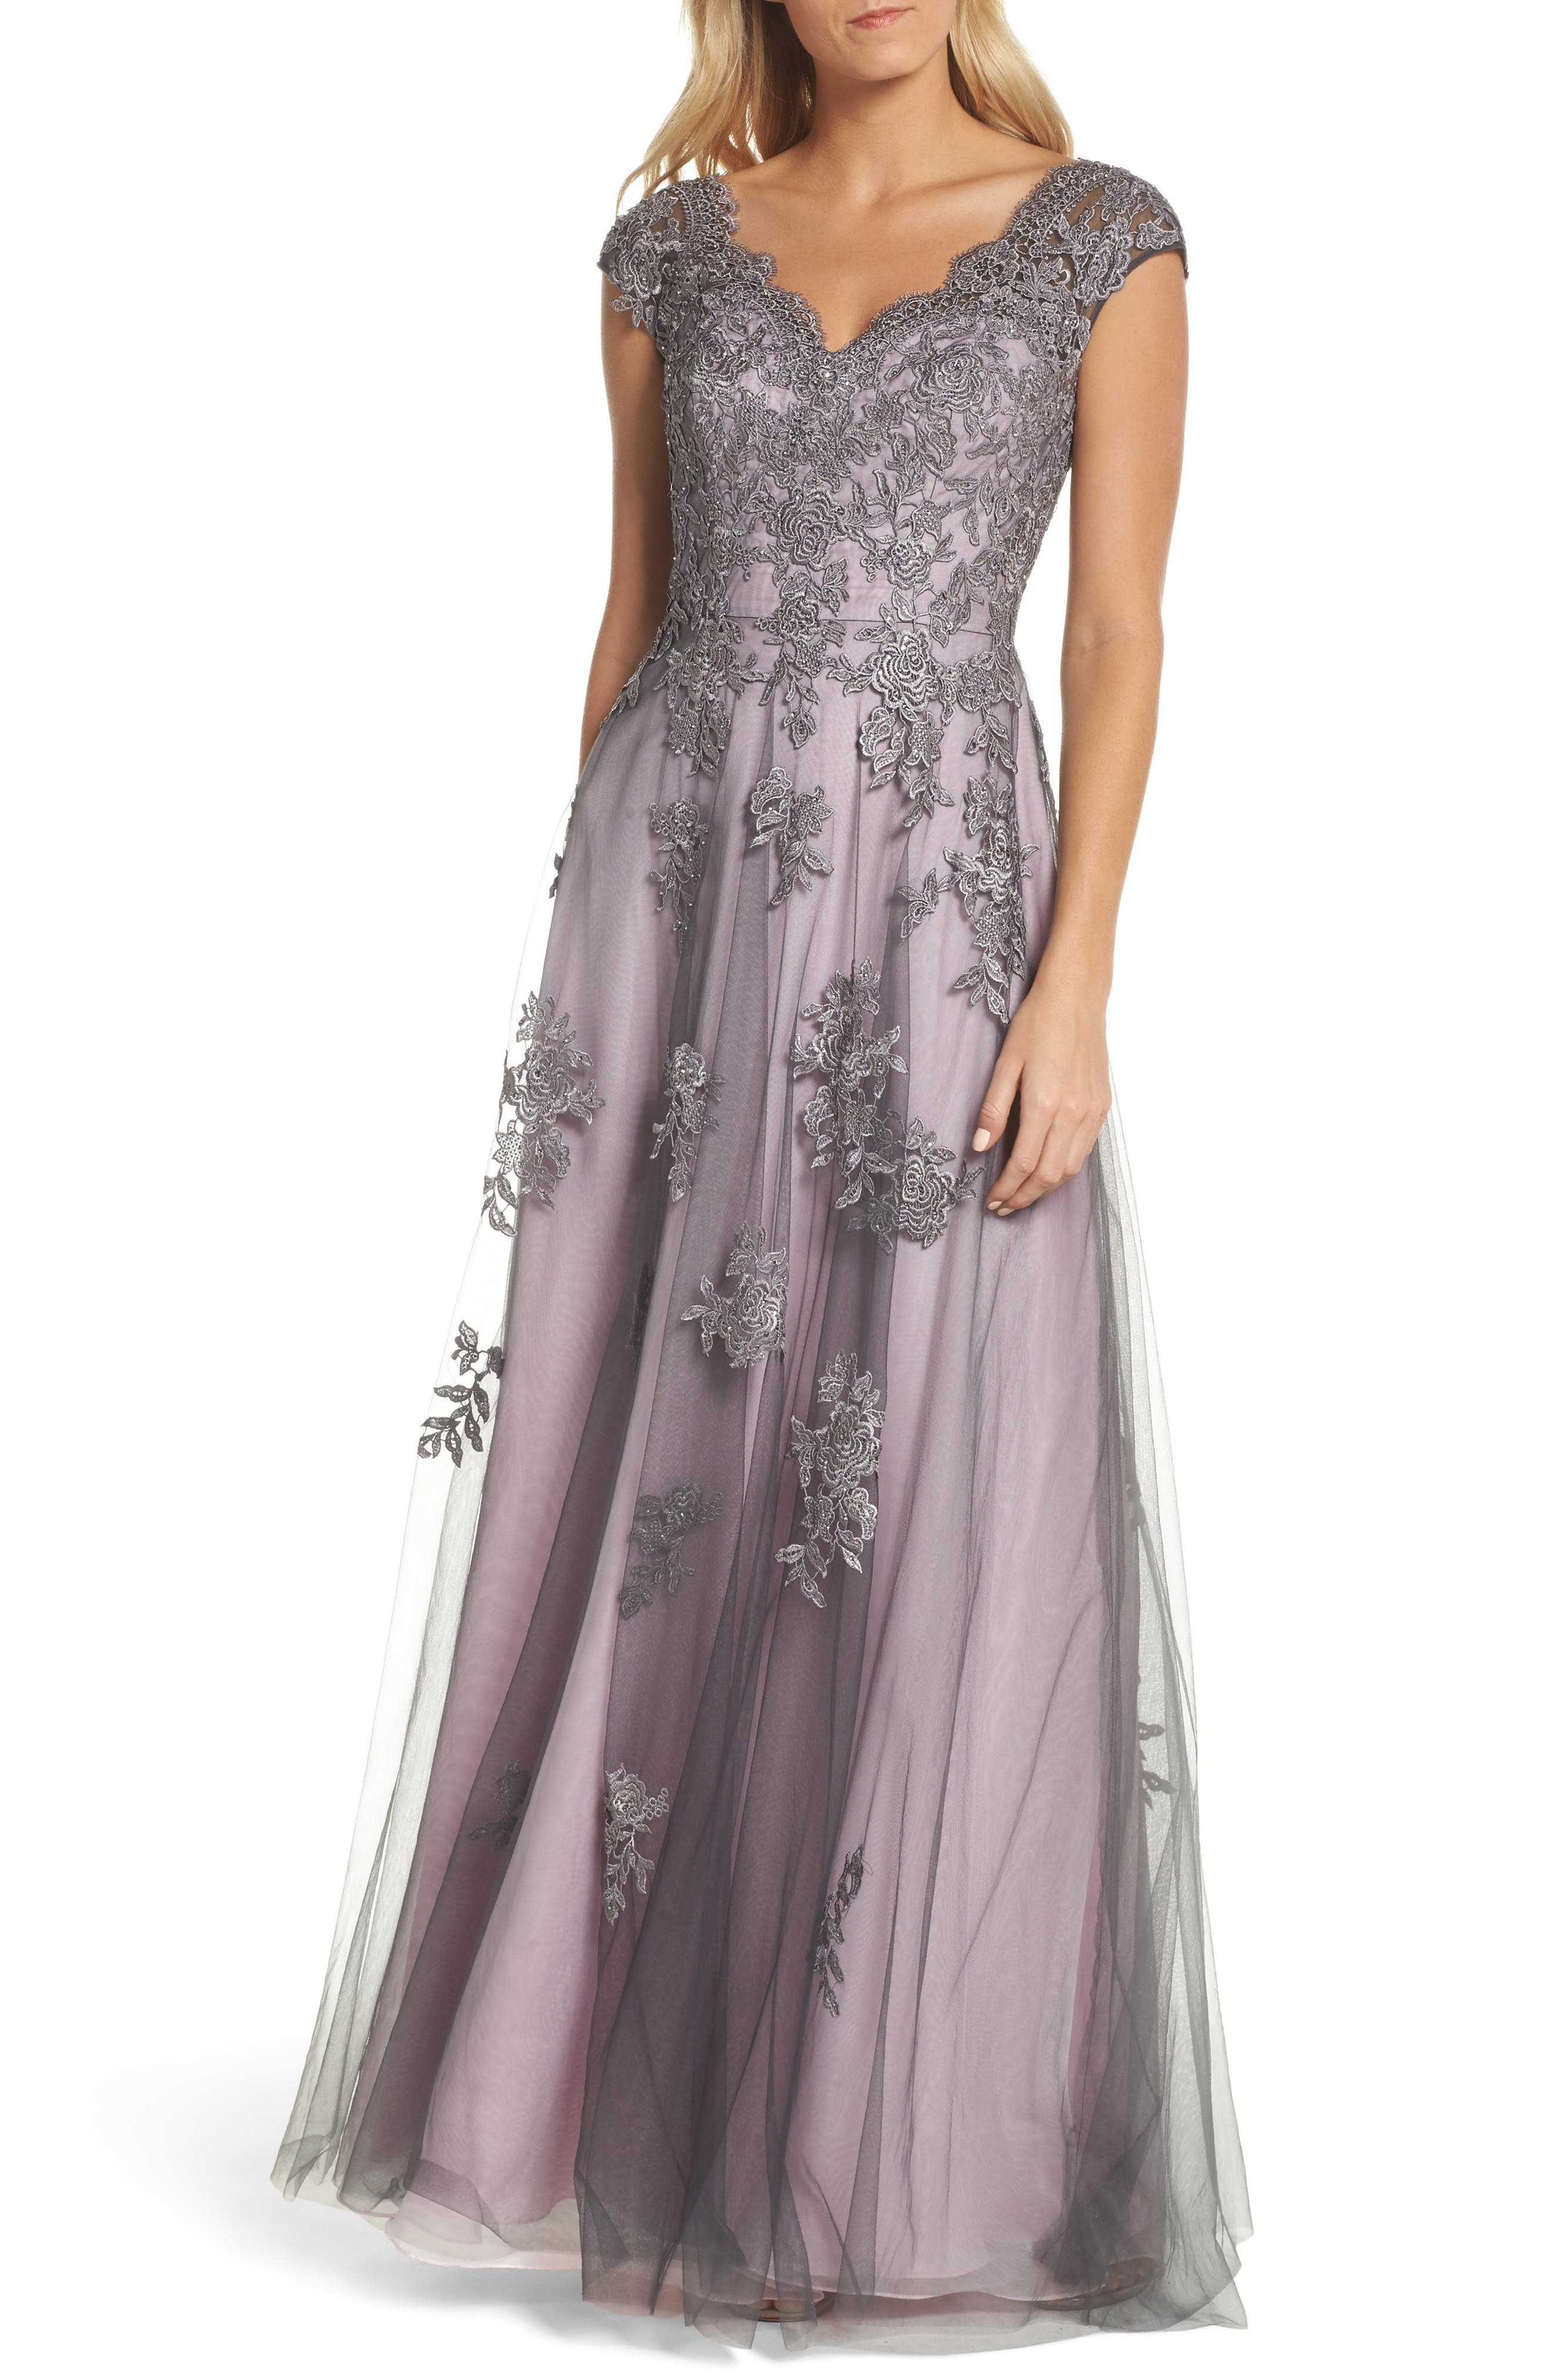 LA FEMME, Embellished Mesh A-Line Gown, Main thumbnail 1, color, PINK/ GRAY